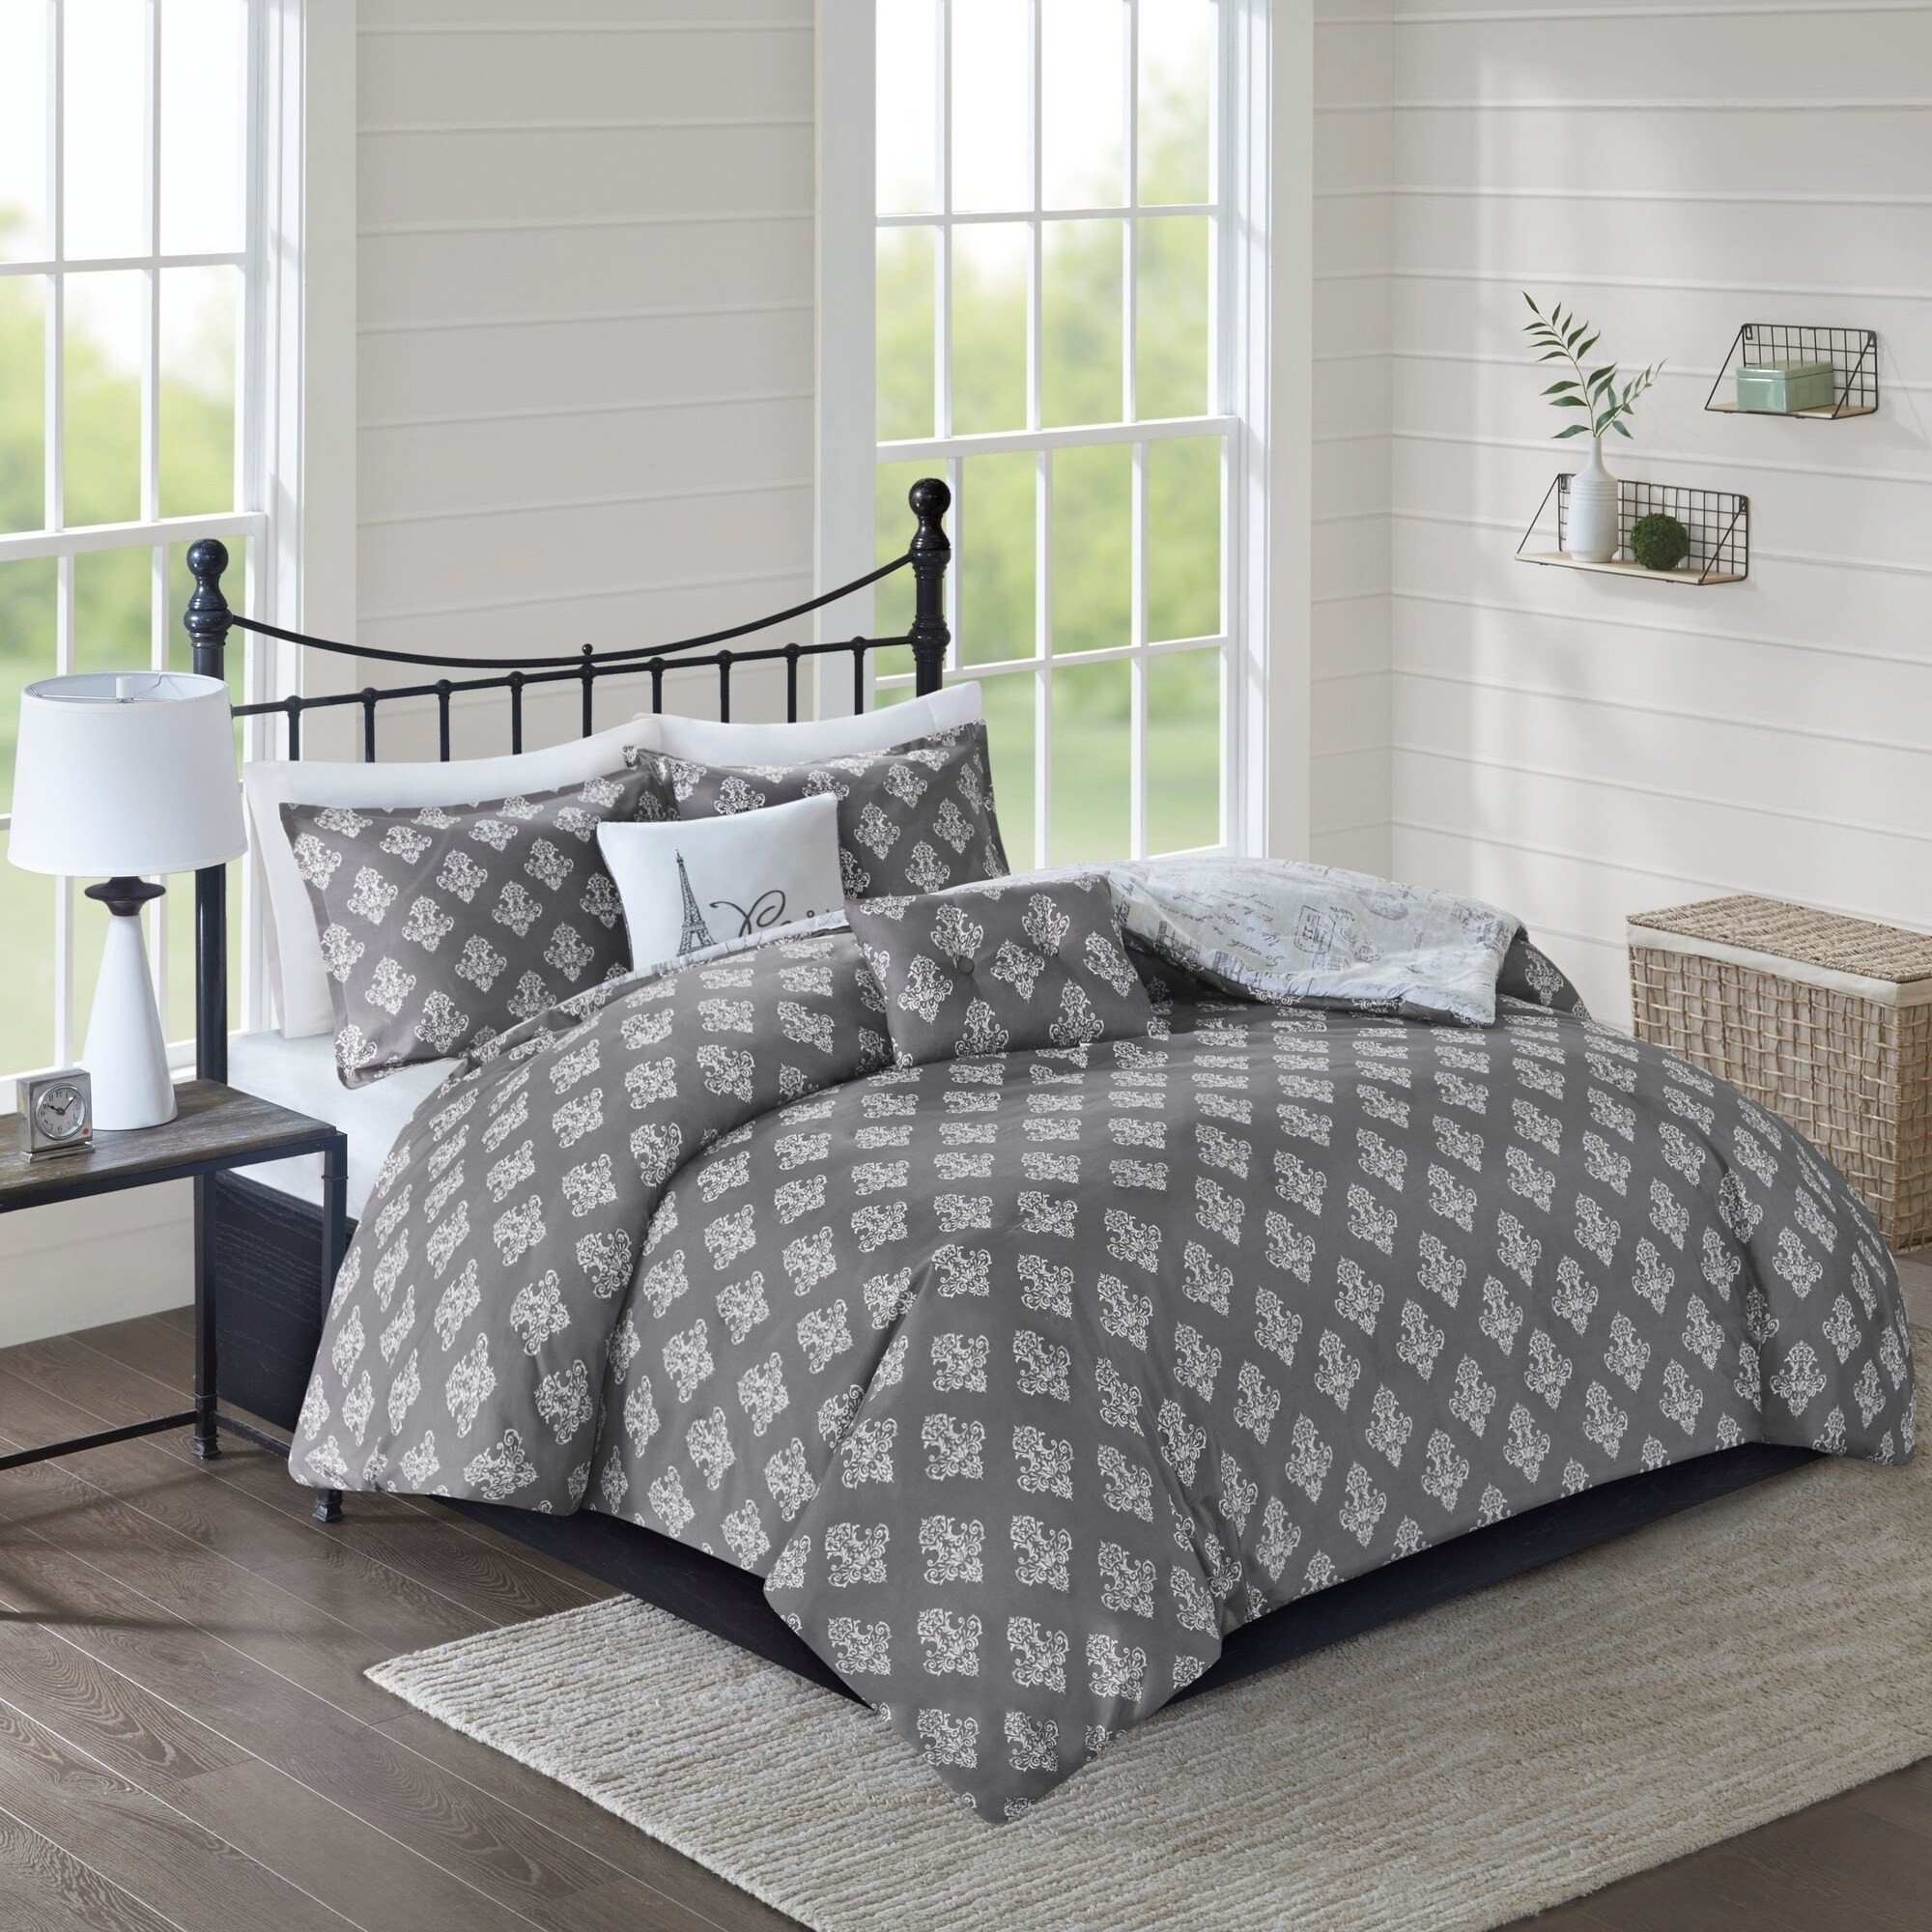 Paris themed Bedroom Ideas Unique 510 Design Mariam Grey Charcoal 5 Piece Reversible Paris Print Duvet Cover Set